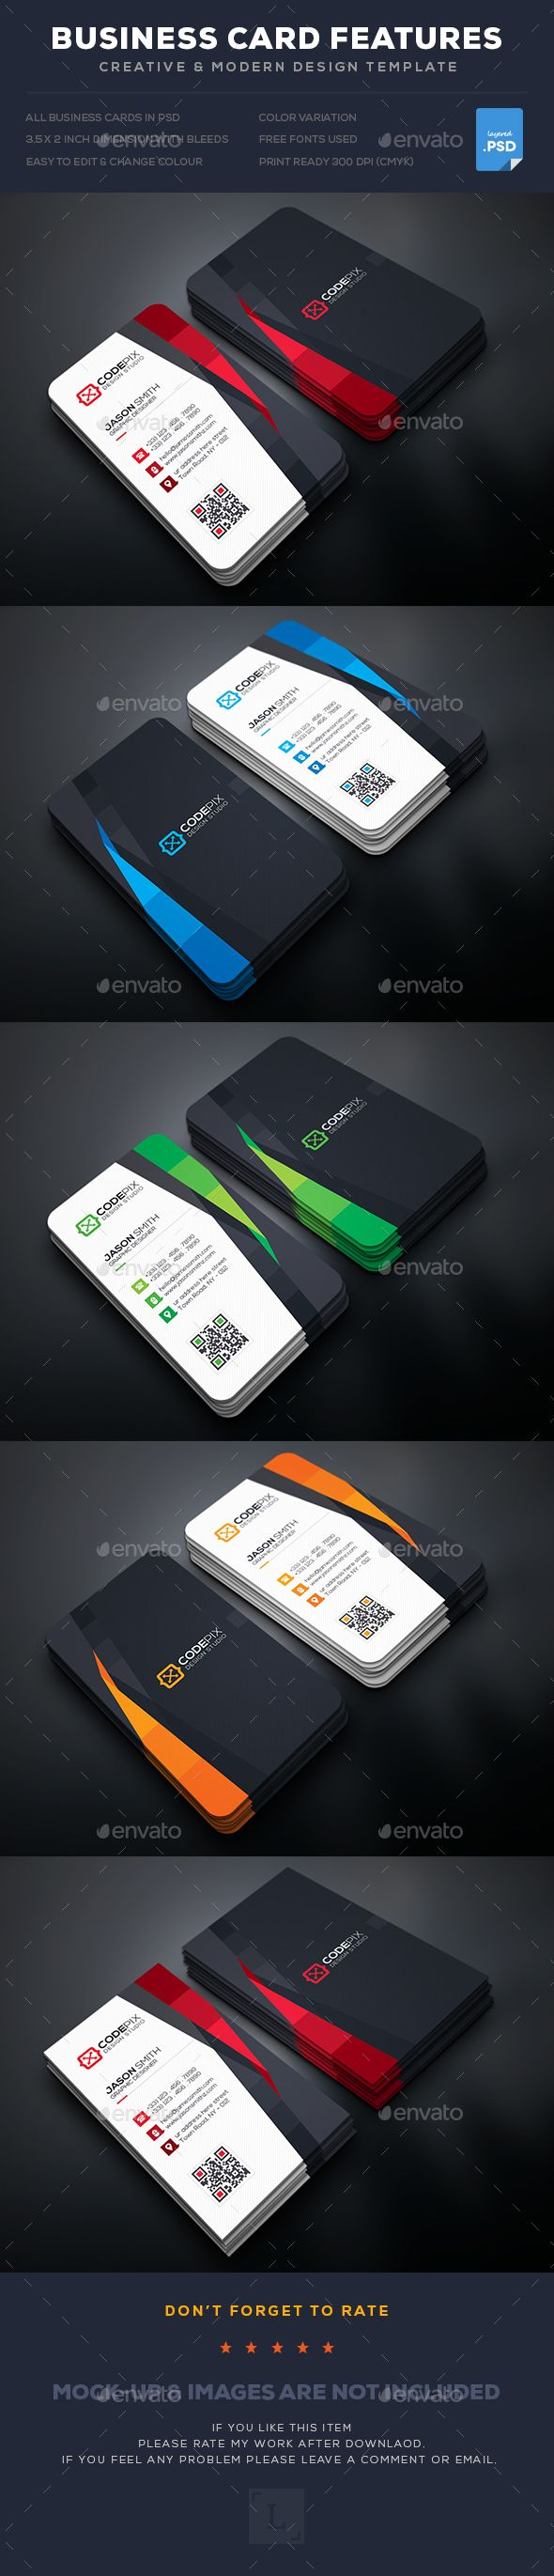 Business card business cards business and print templates business card accmission Gallery